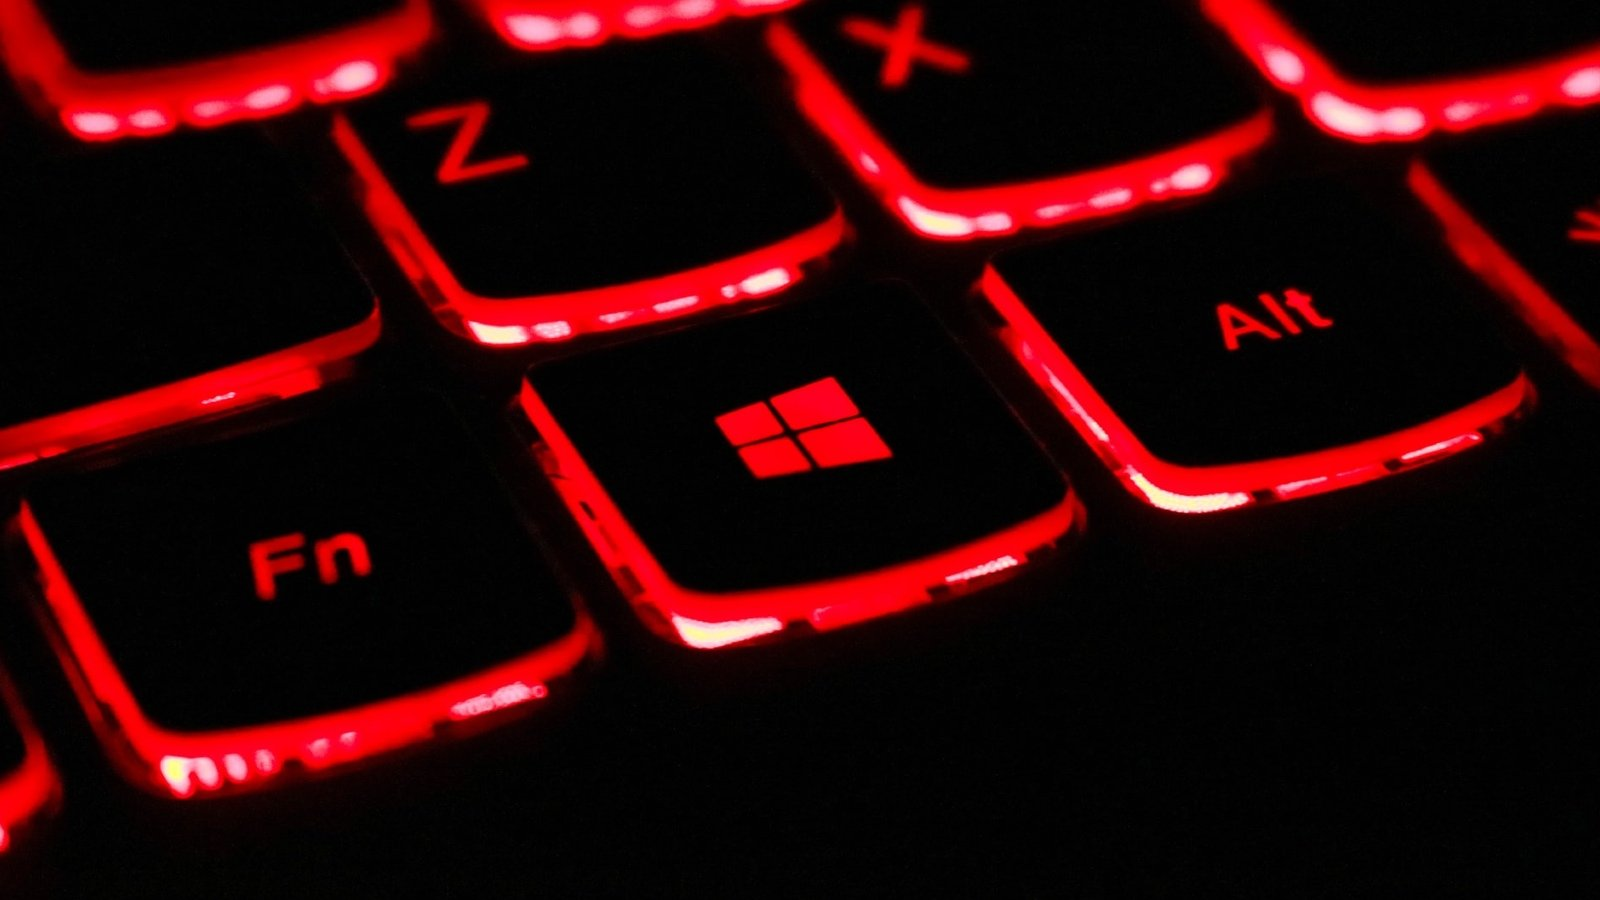 New UEFI bootkit used to backdoor Windows devices since 2012